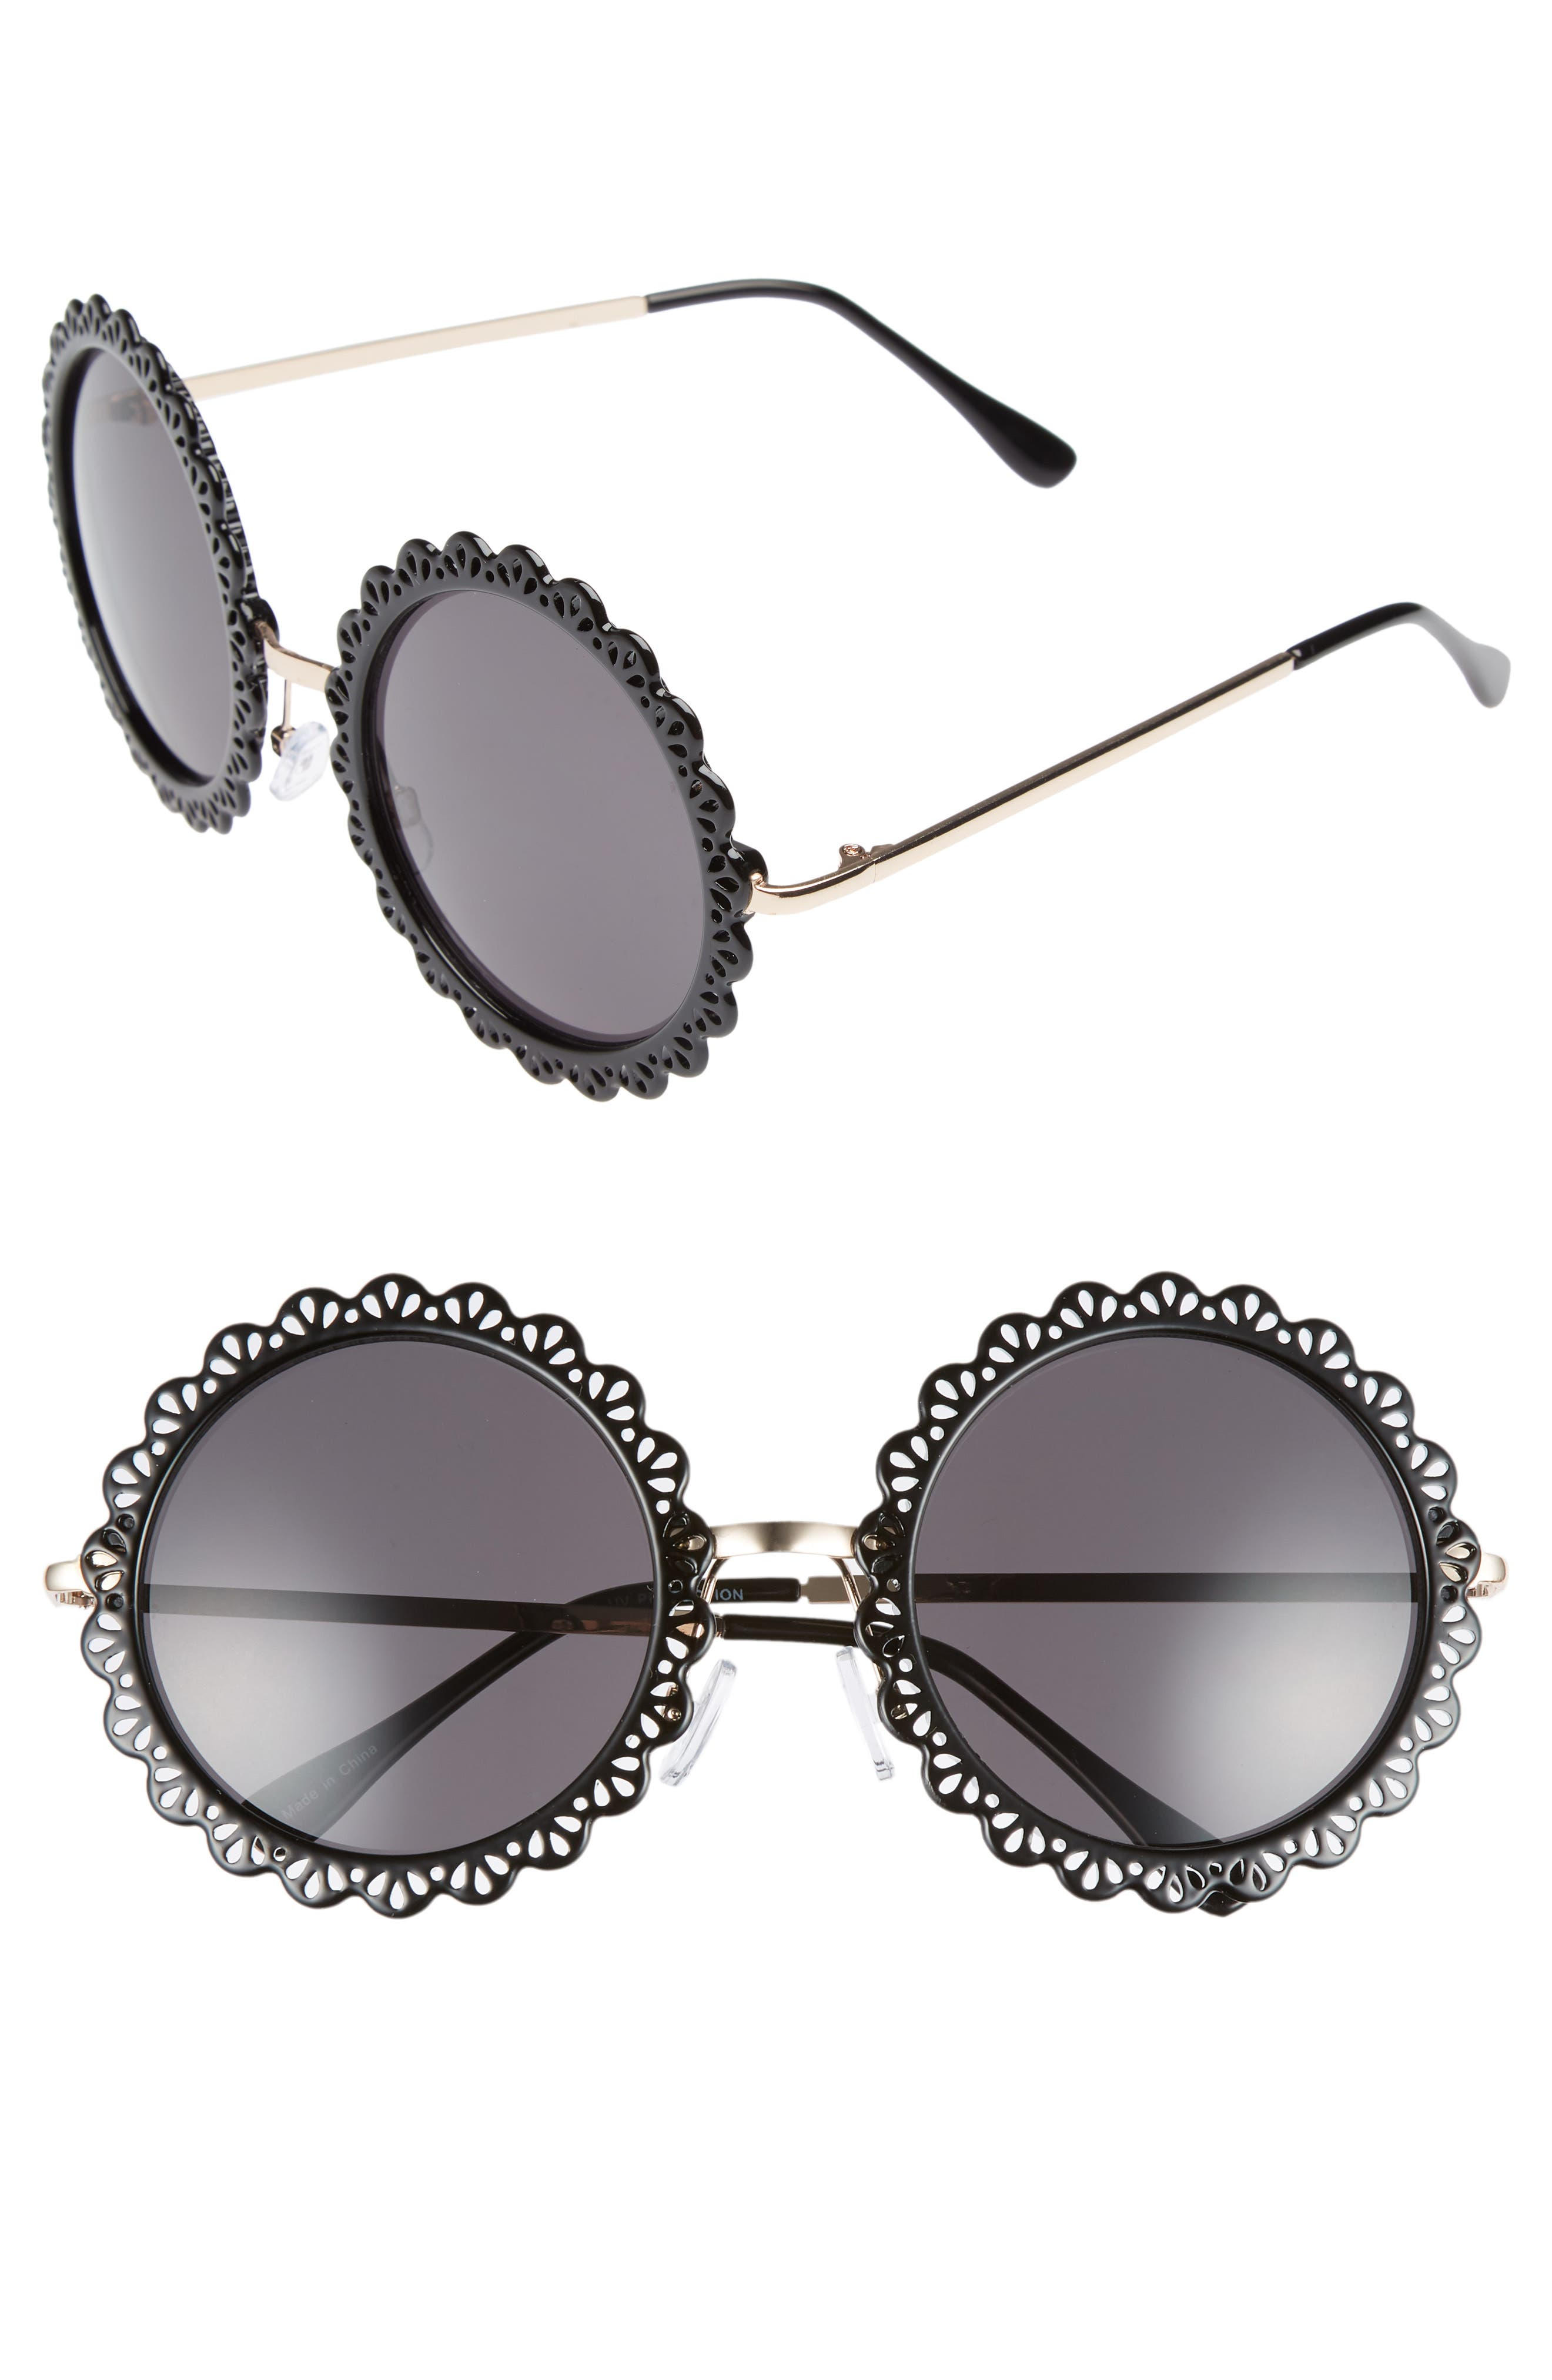 54mm Lace Detail Round Sunglasses,                             Main thumbnail 1, color,                             001